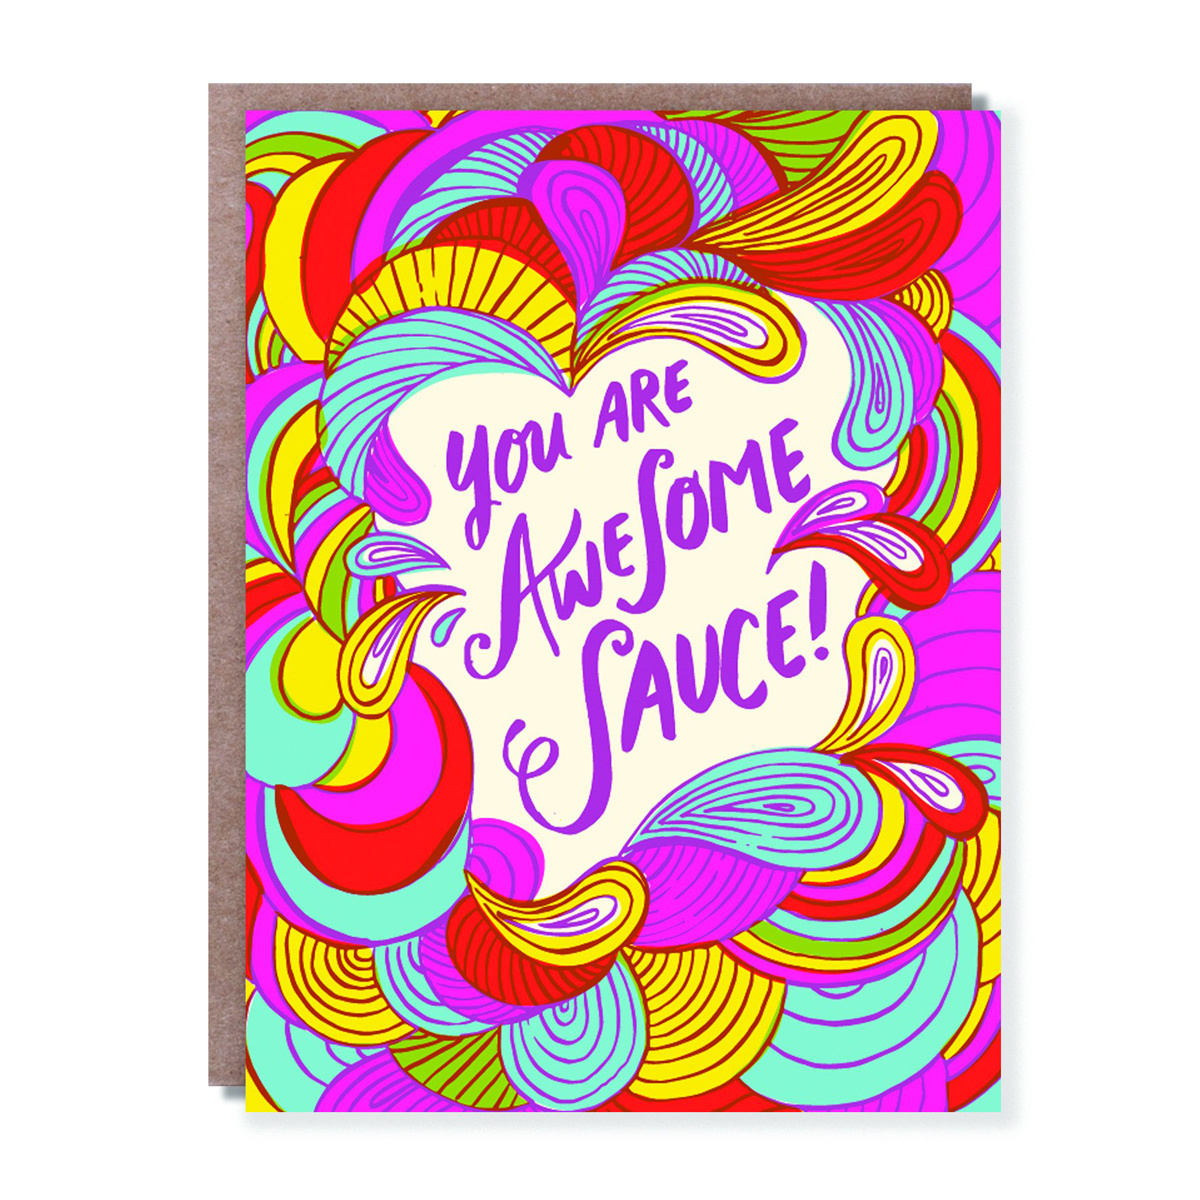 Hello!Lucky You Are Awesome Sauce!